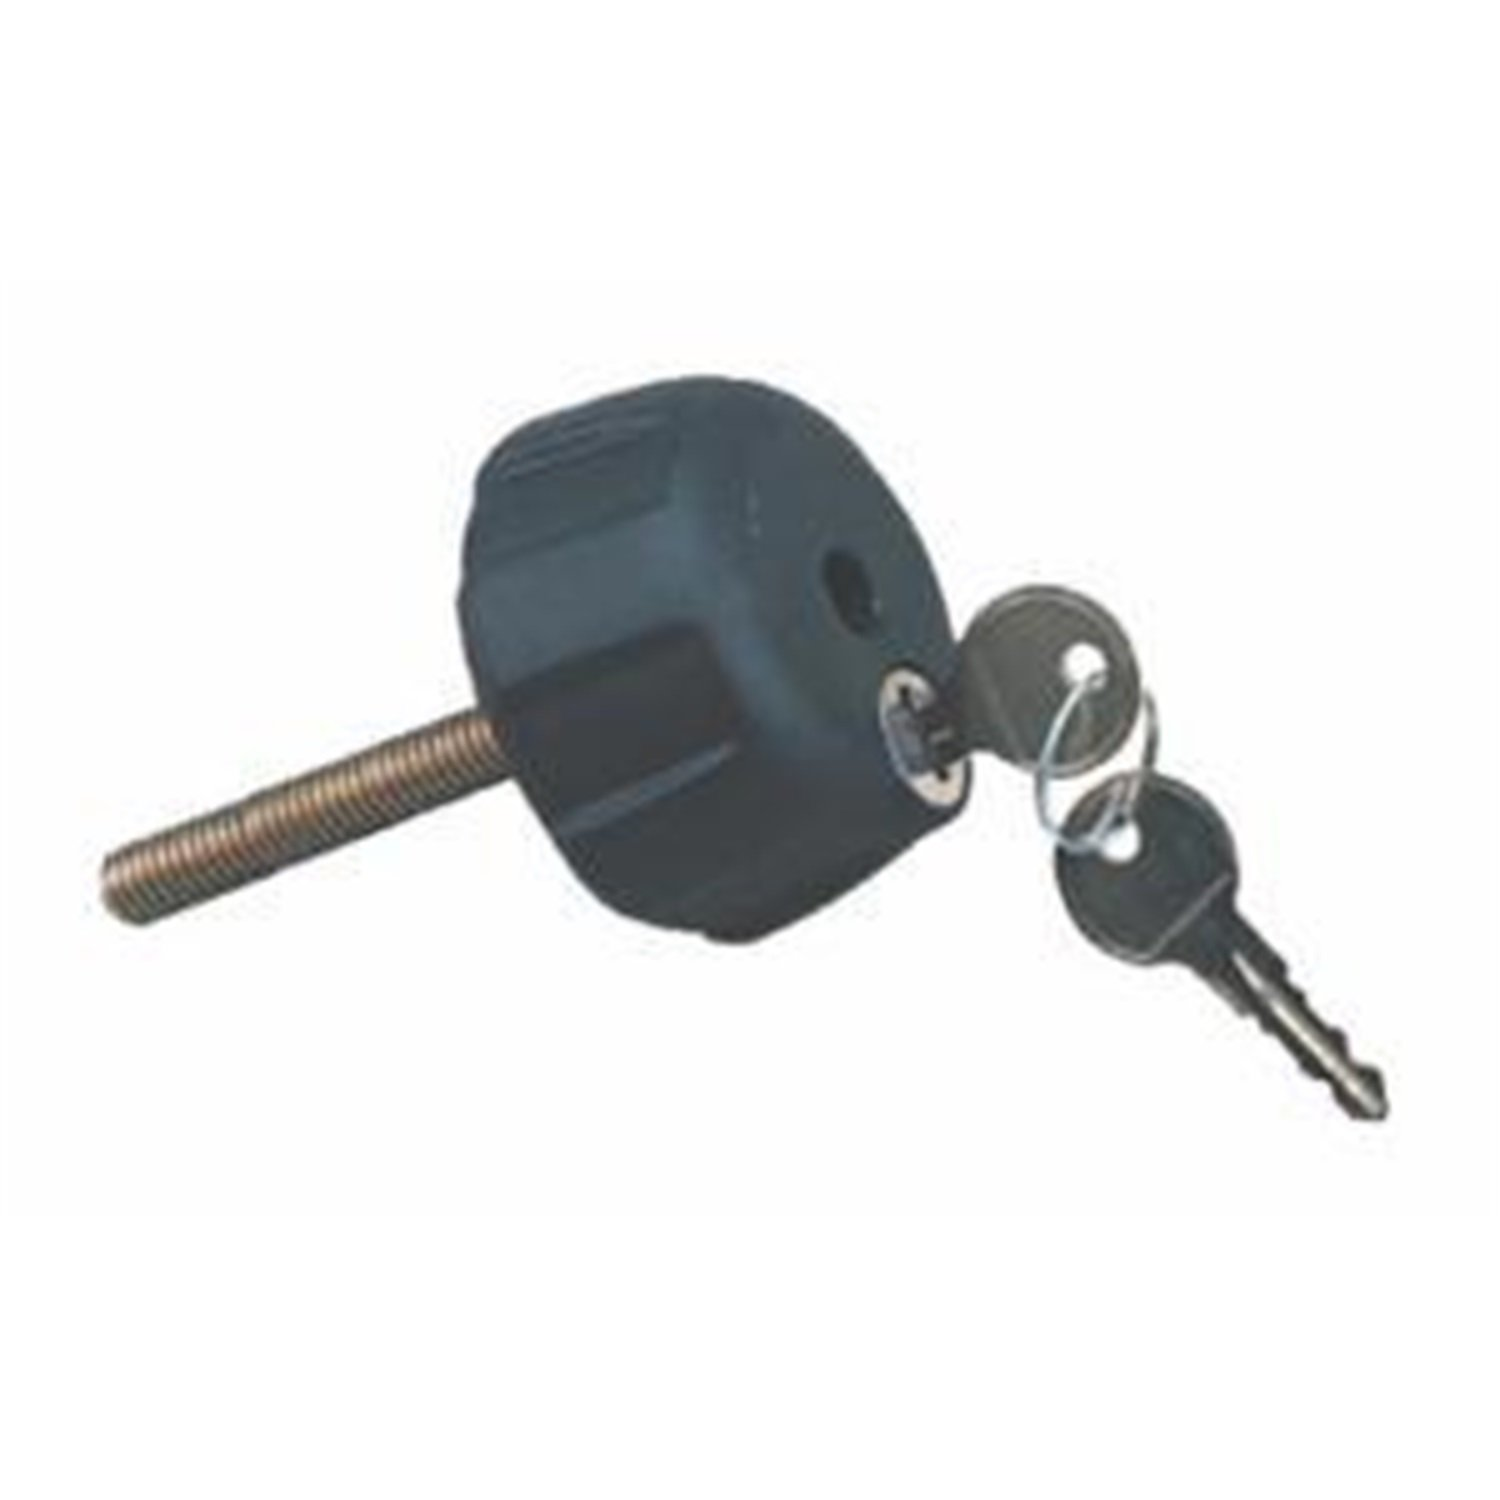 SportRack Hitch Rack Locking Knob with Bolt